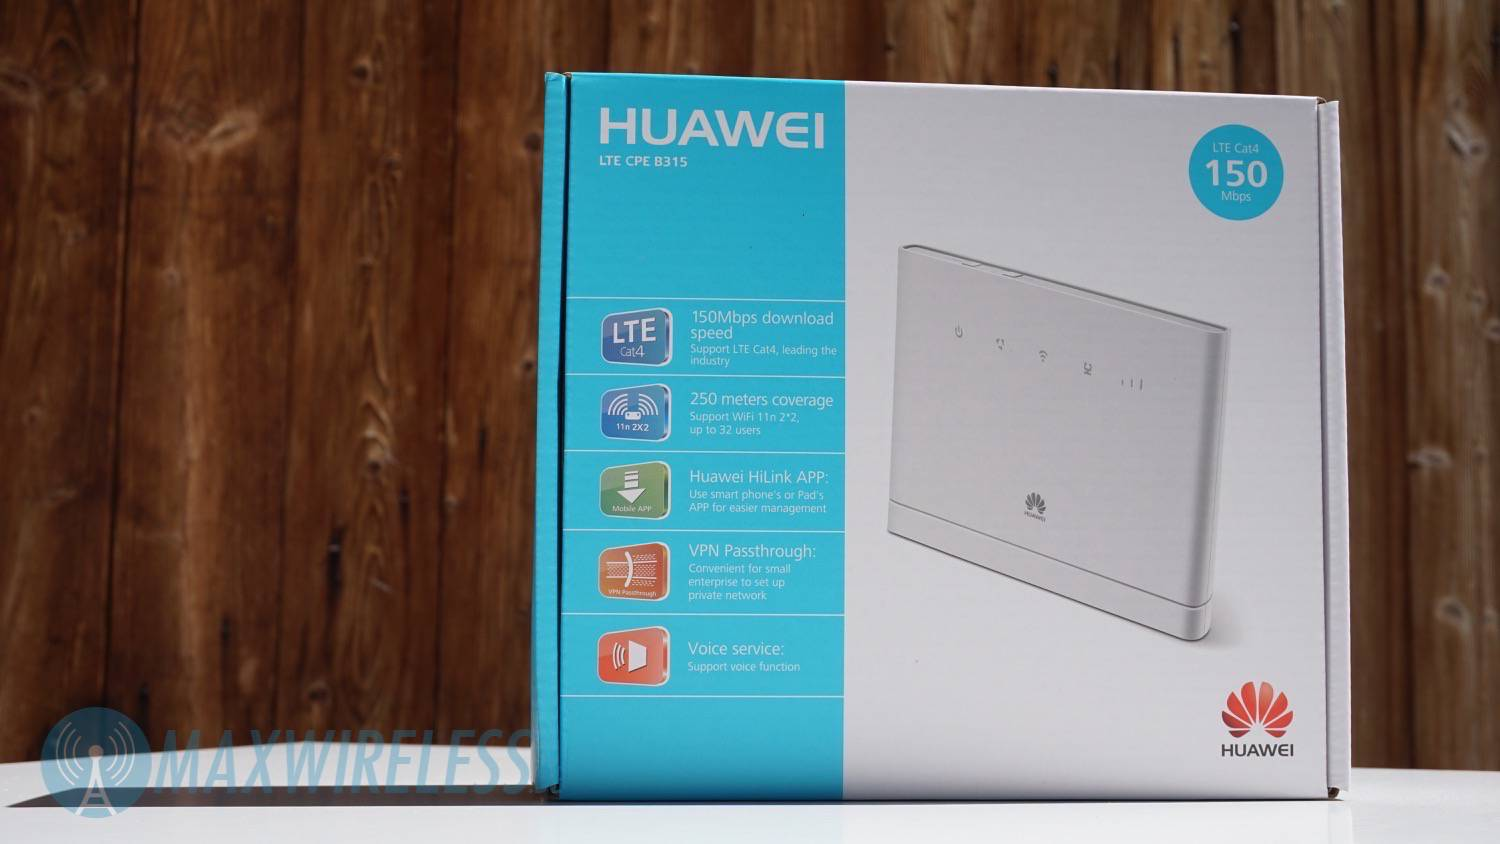 test huawei b315 lte cat4 router. Black Bedroom Furniture Sets. Home Design Ideas